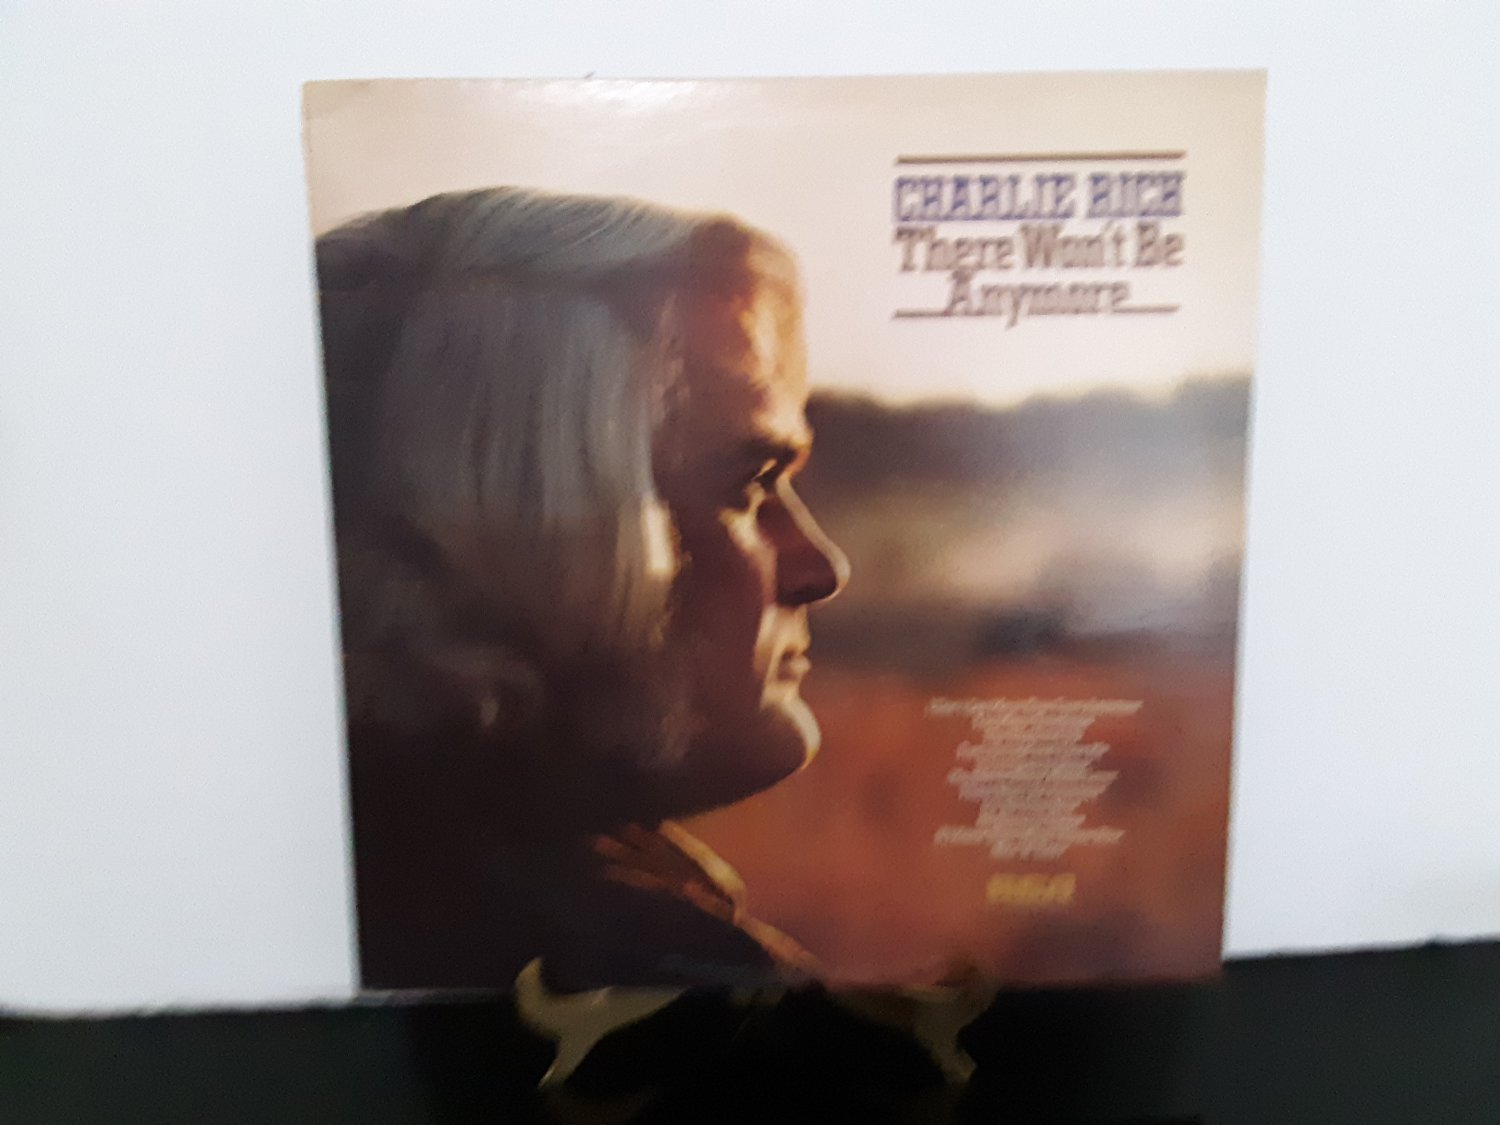 Charlie Rich - There Won't Be Anymore - Circa  1974